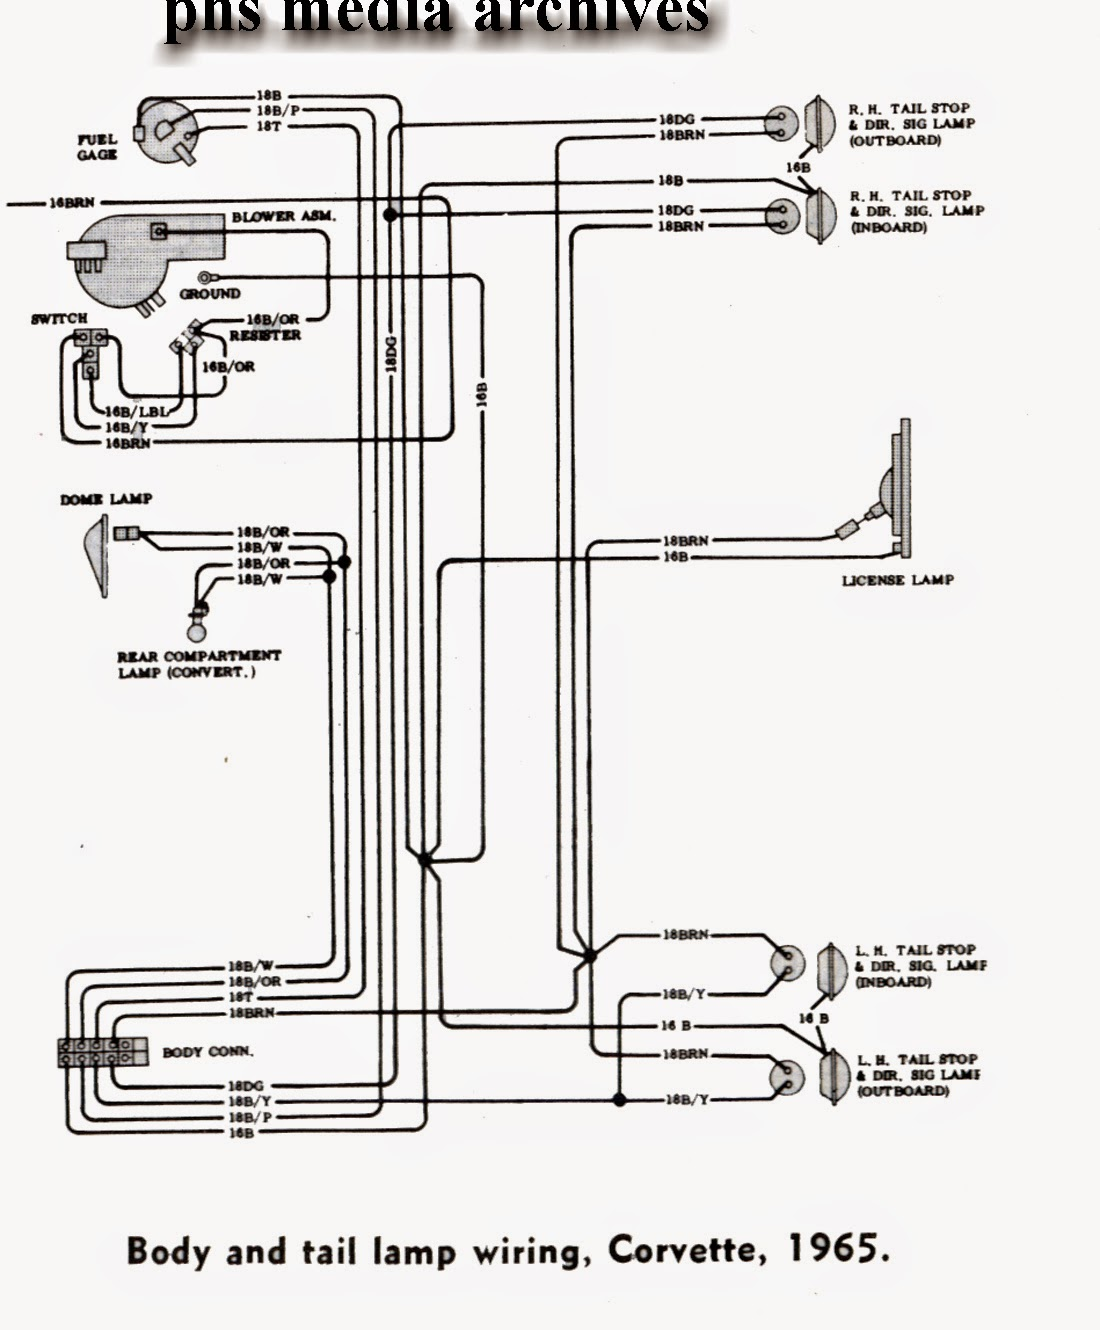 1969 camaro starter wiring diagram on 79 camaro electrical wiring